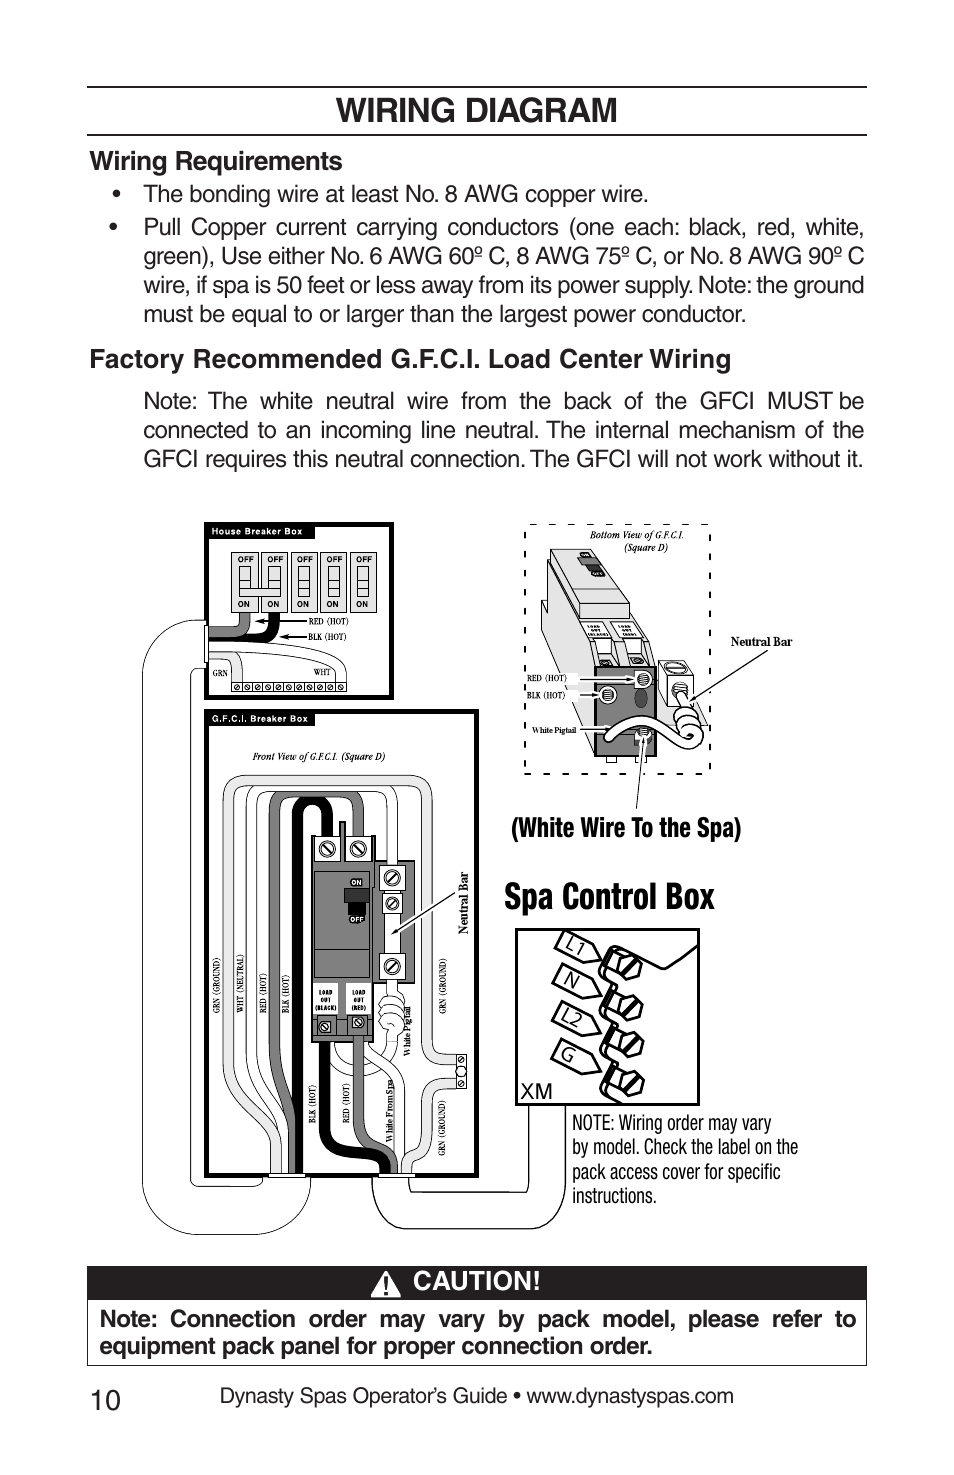 wiring diagram 7hite factory recommended g f c i load center rh manualsdir com Cal Spa Wiring Diagram Pool Wiring